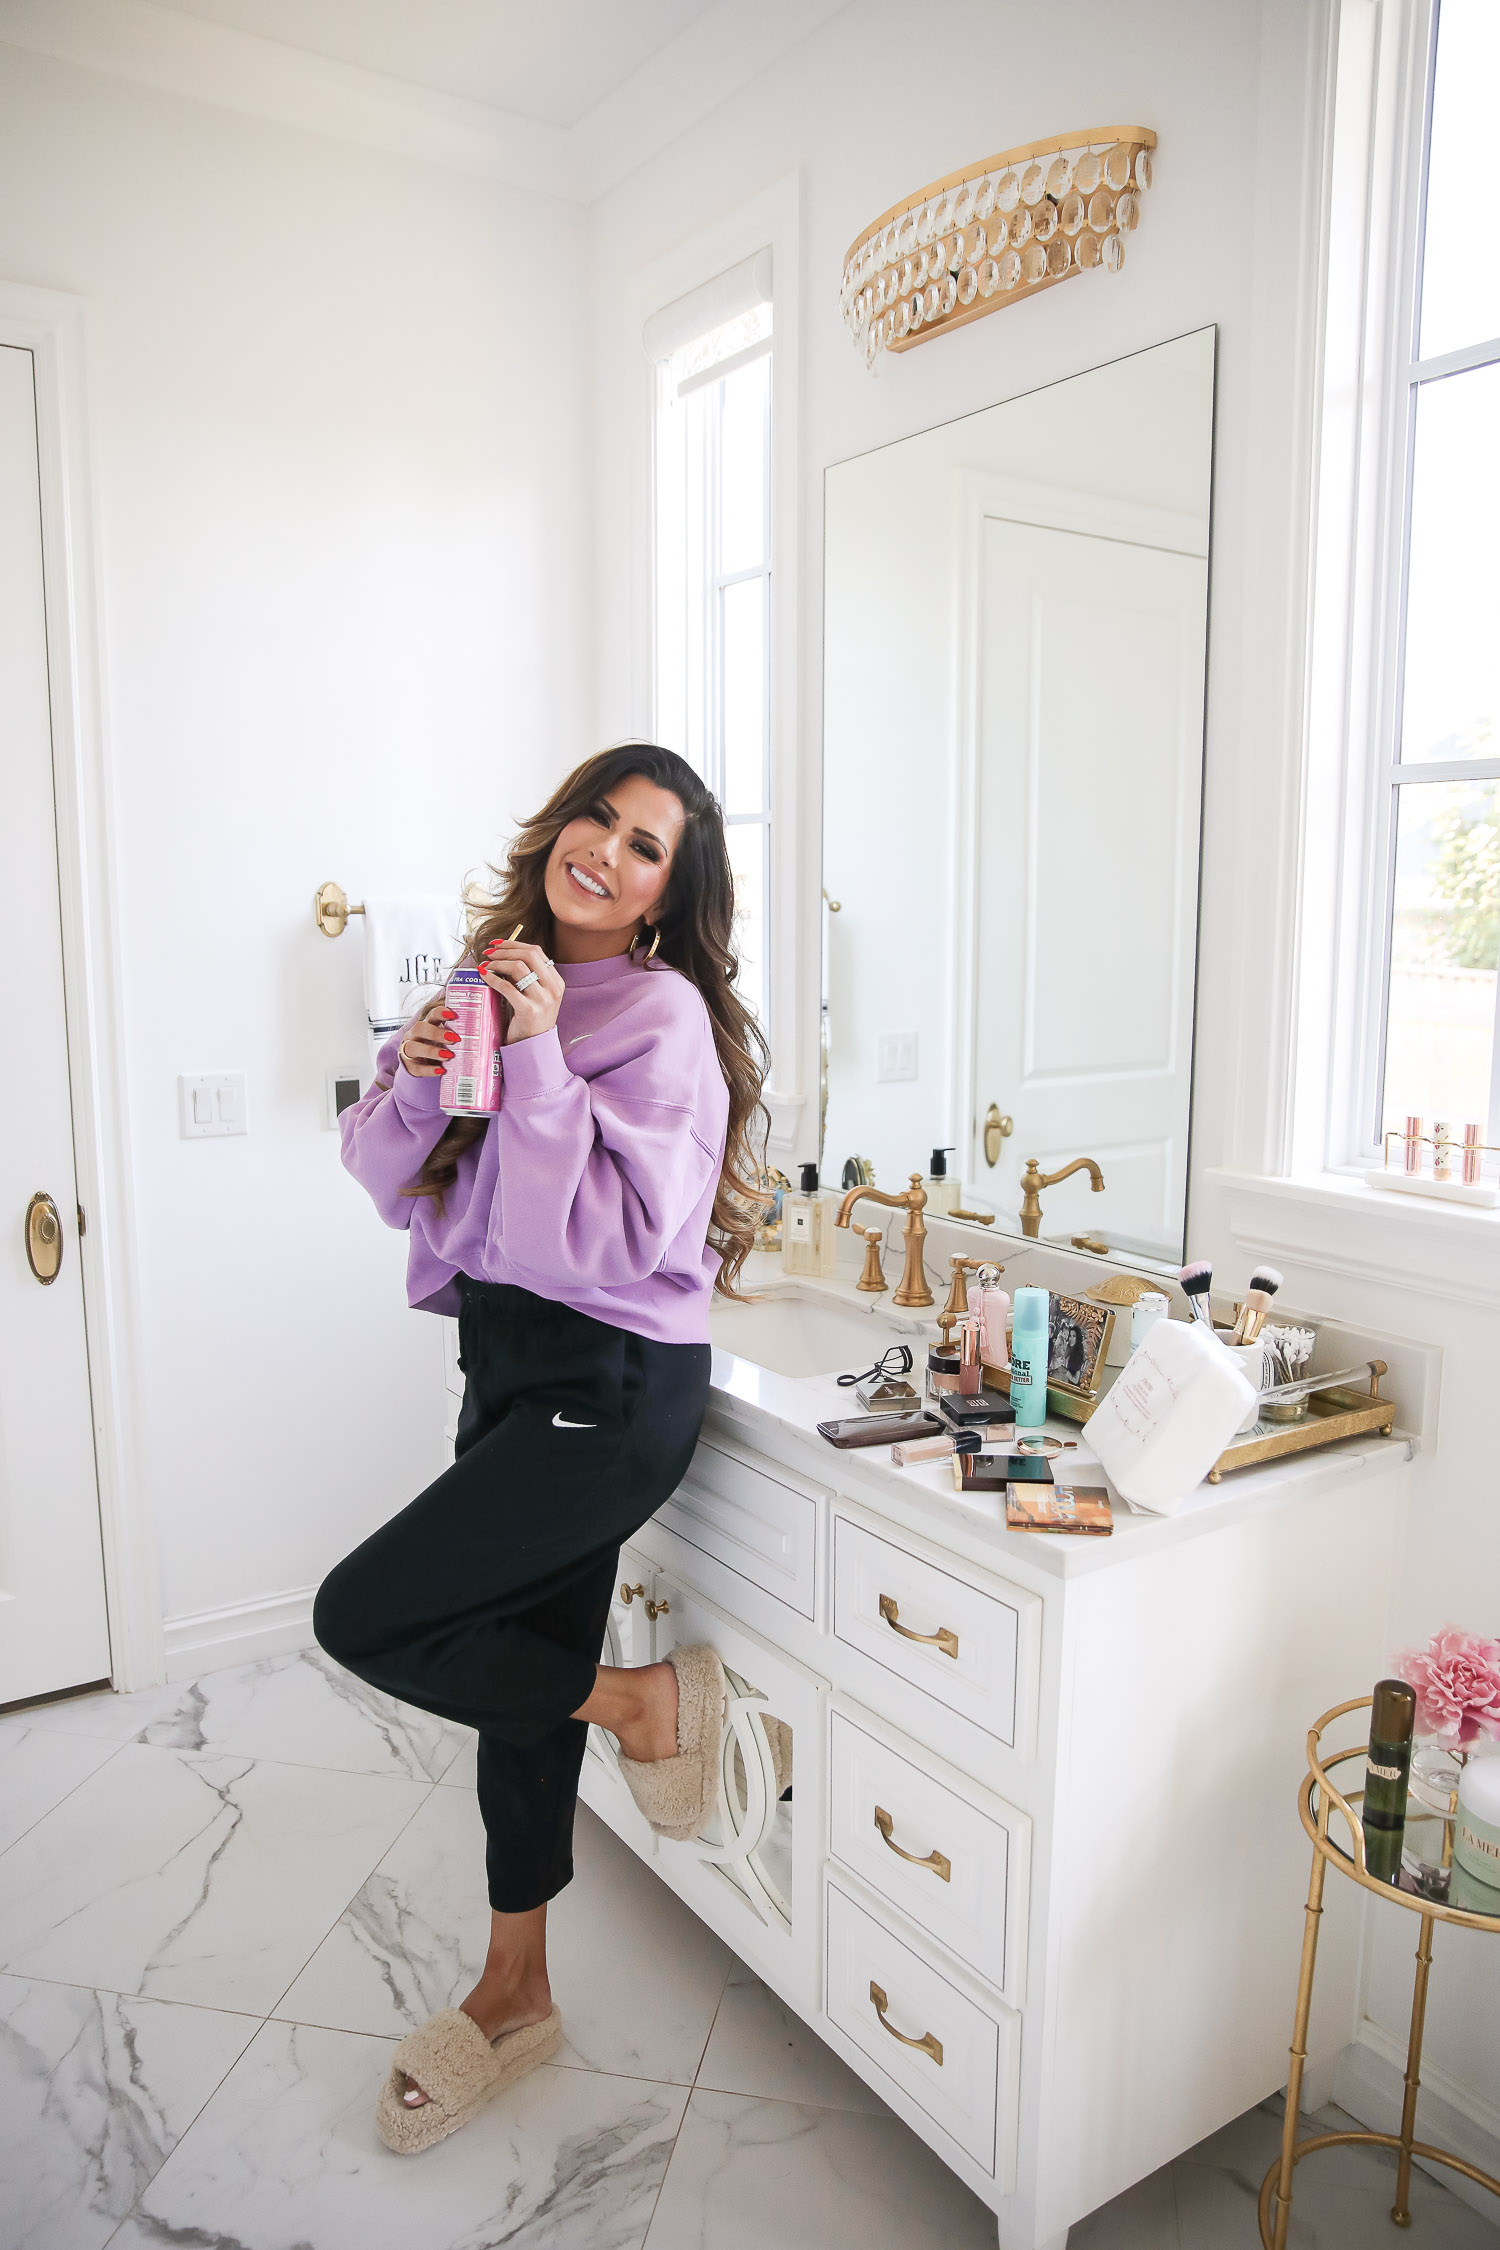 nordstrom beauty must haves fall 2021, sisley pore minimizer review, sisley blur powder review, sisley hyaluronic acid, emily gemma beauty must haves, hoola bronzer palette | Beauty Favorites by popular US beauty blog, Haute Beauty Guide: image of Emily Gemma wearing a purple sweatshirt and black Nike jogger pants while leaning against her bathroom vanity and holding a can of soda in her hands.